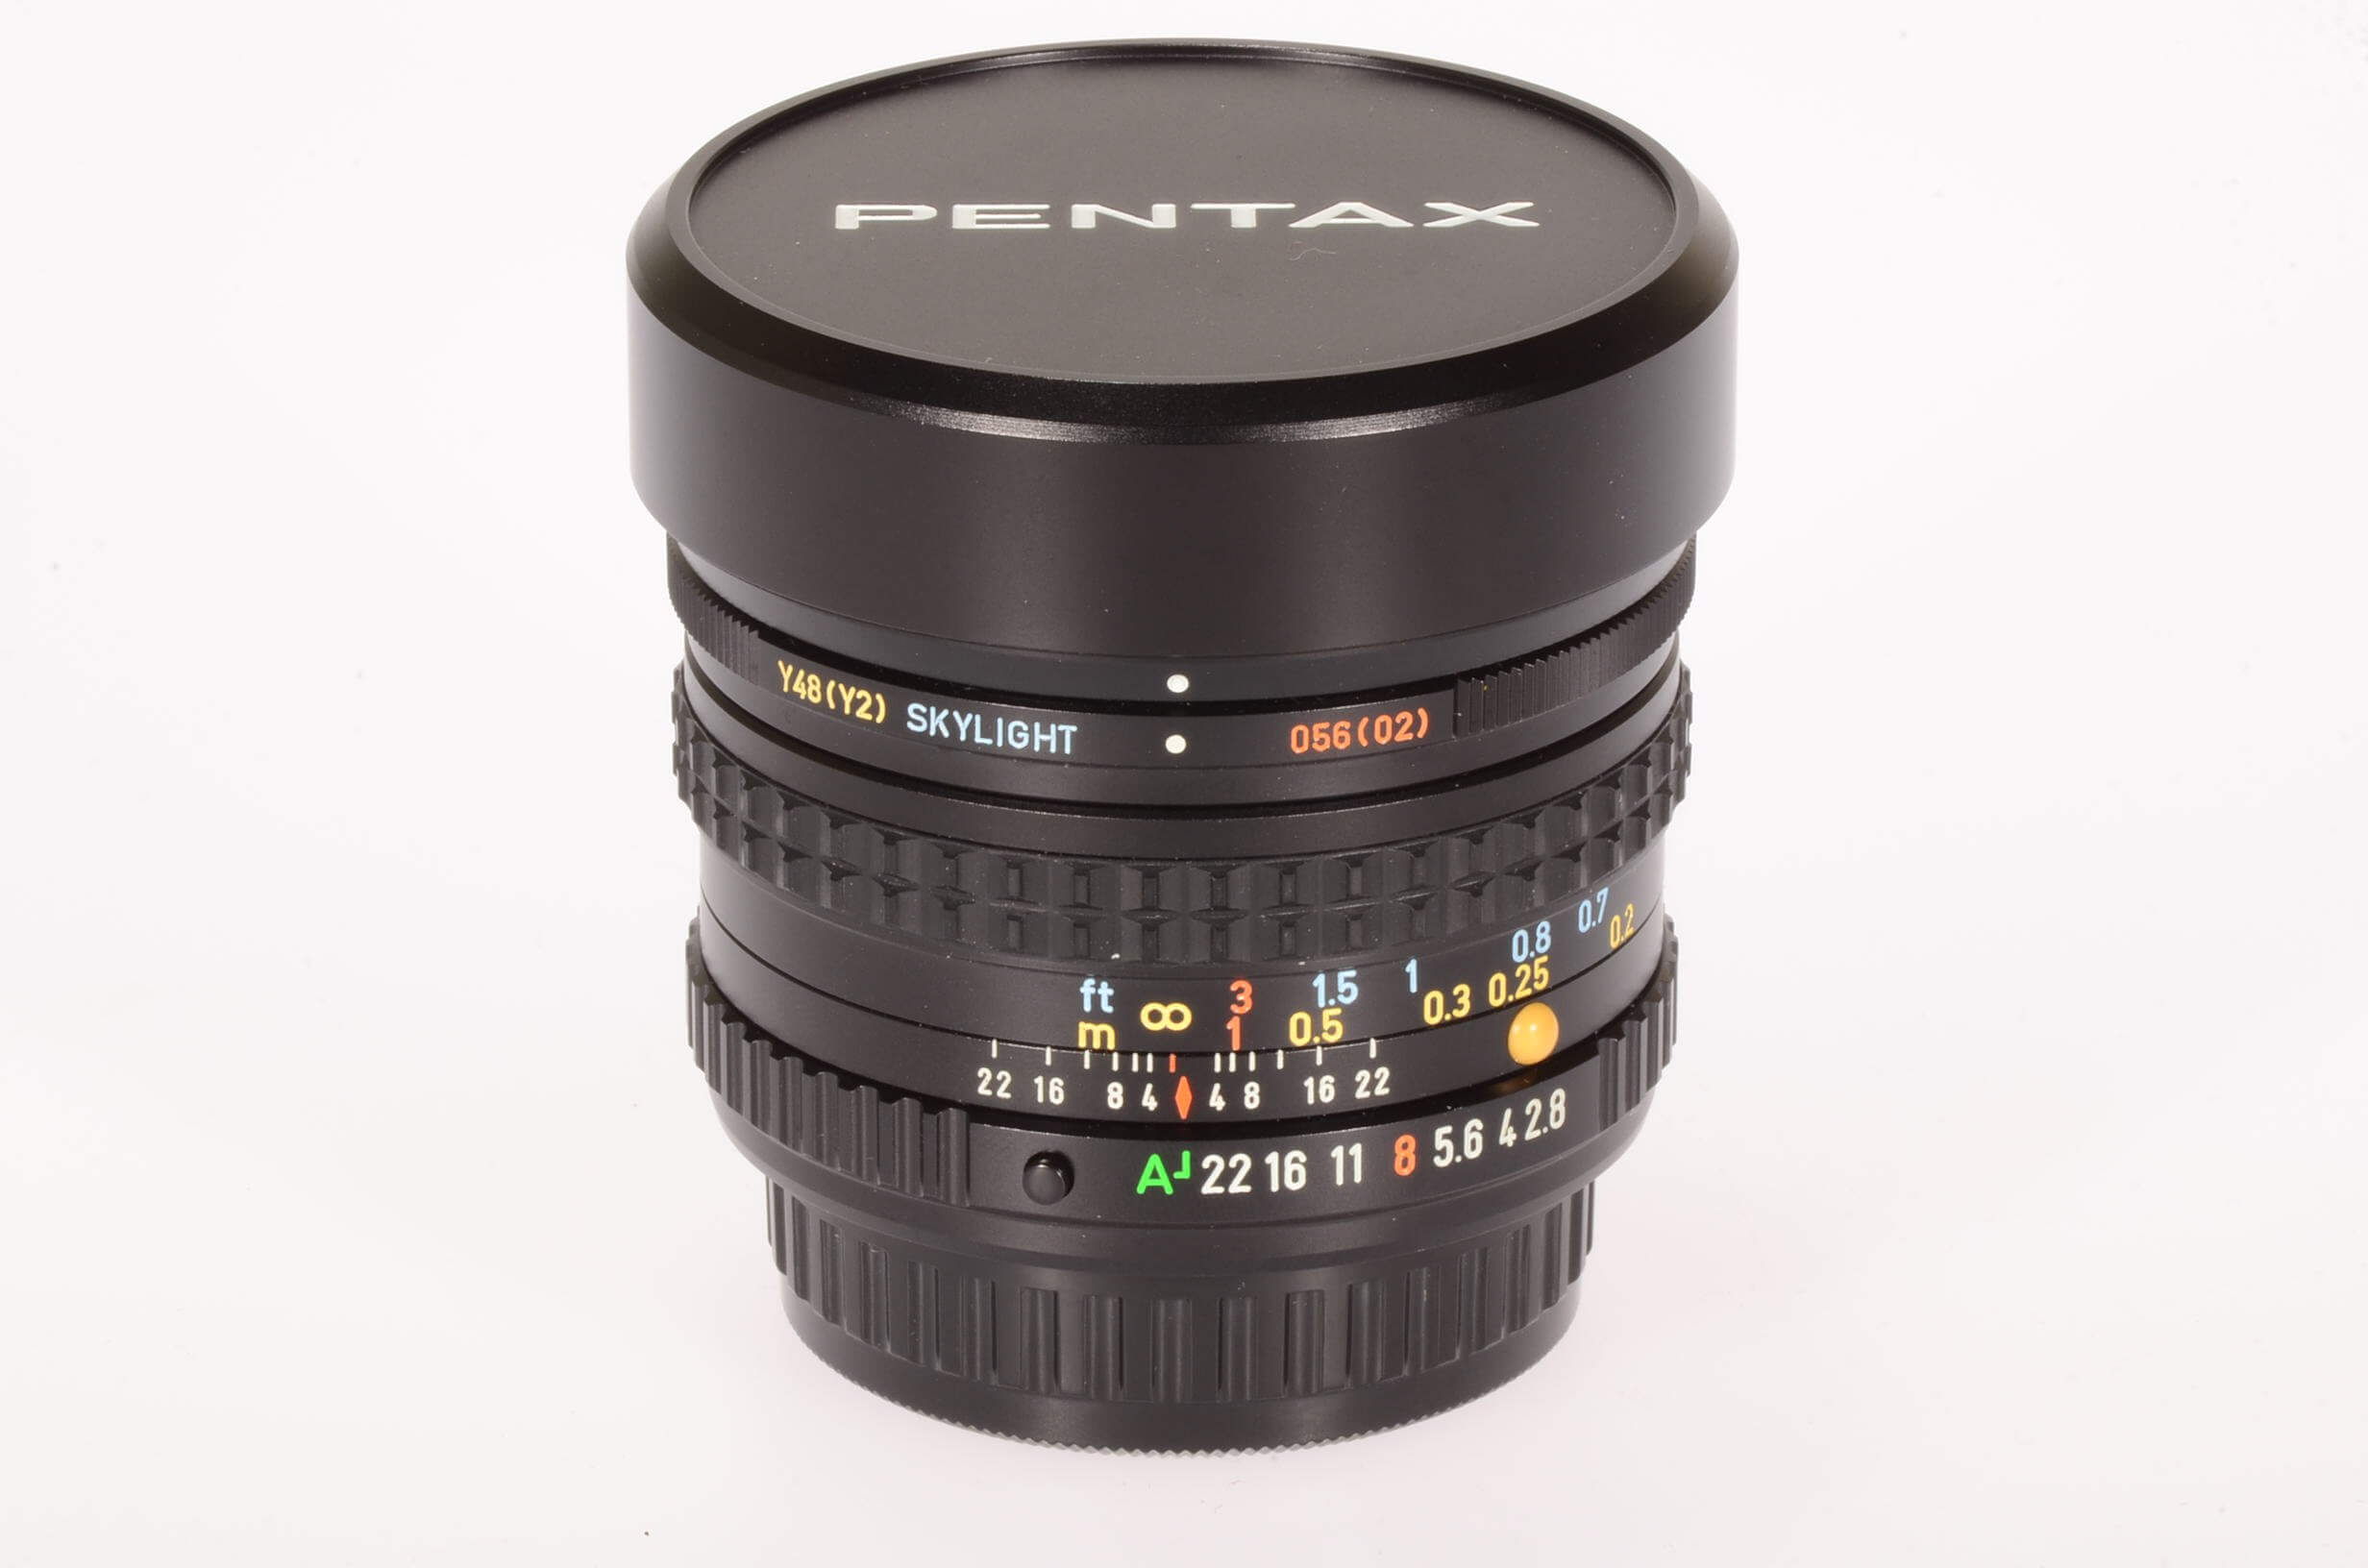 Pentax 16mm f2.8 fish-eye, gorgeous condition!